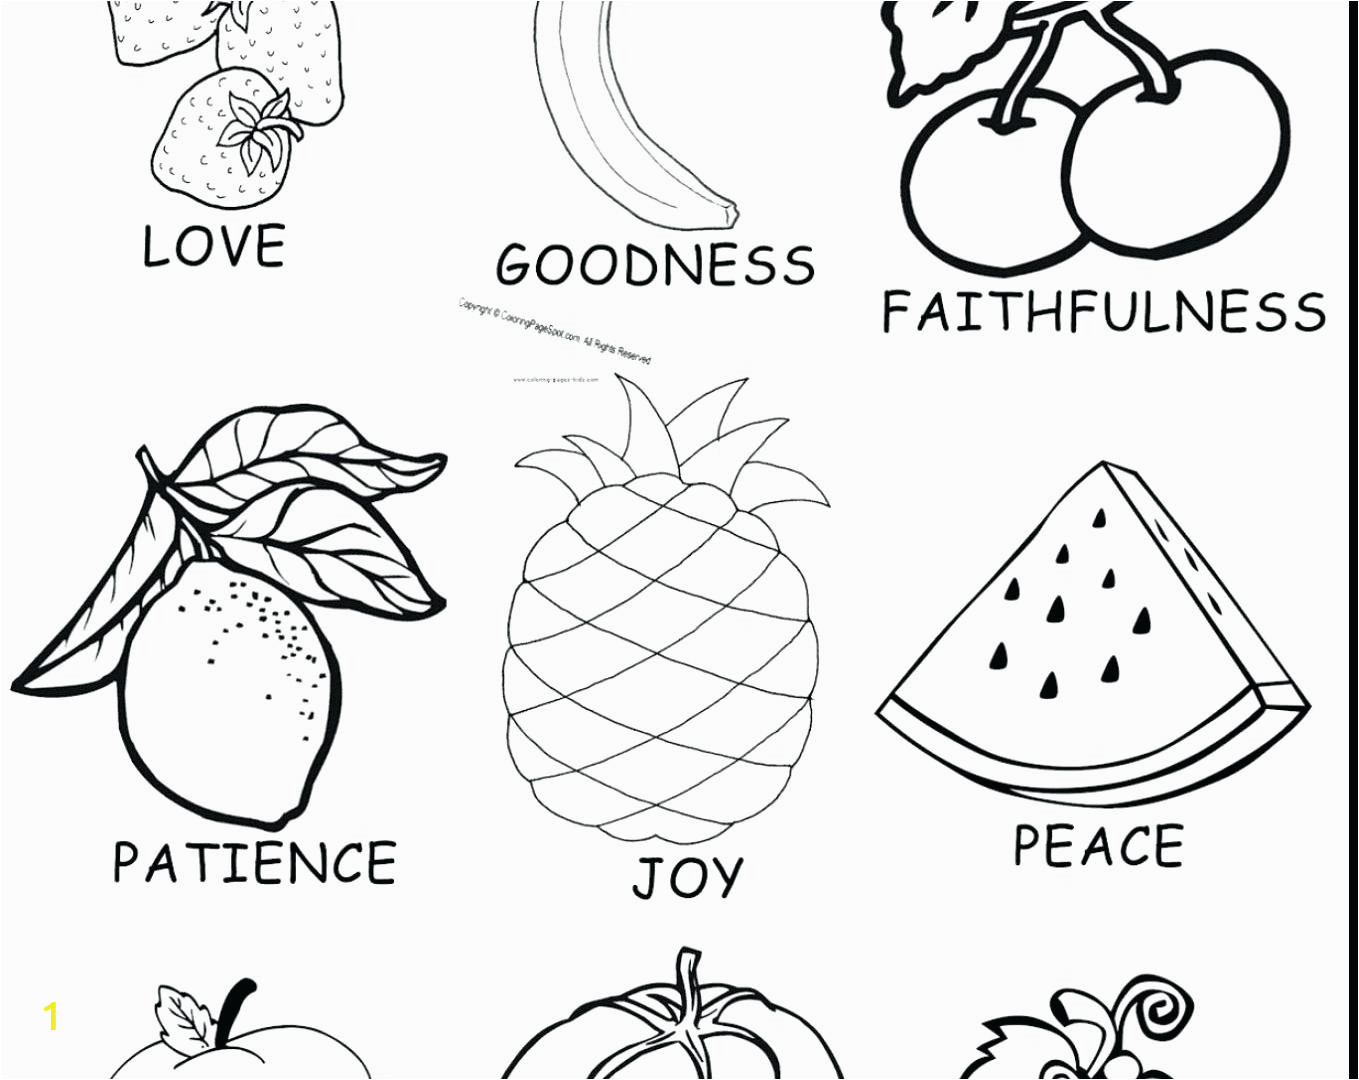 fruits of the spirit coloring pages printable lovely fruit joy s bible friendship sheet